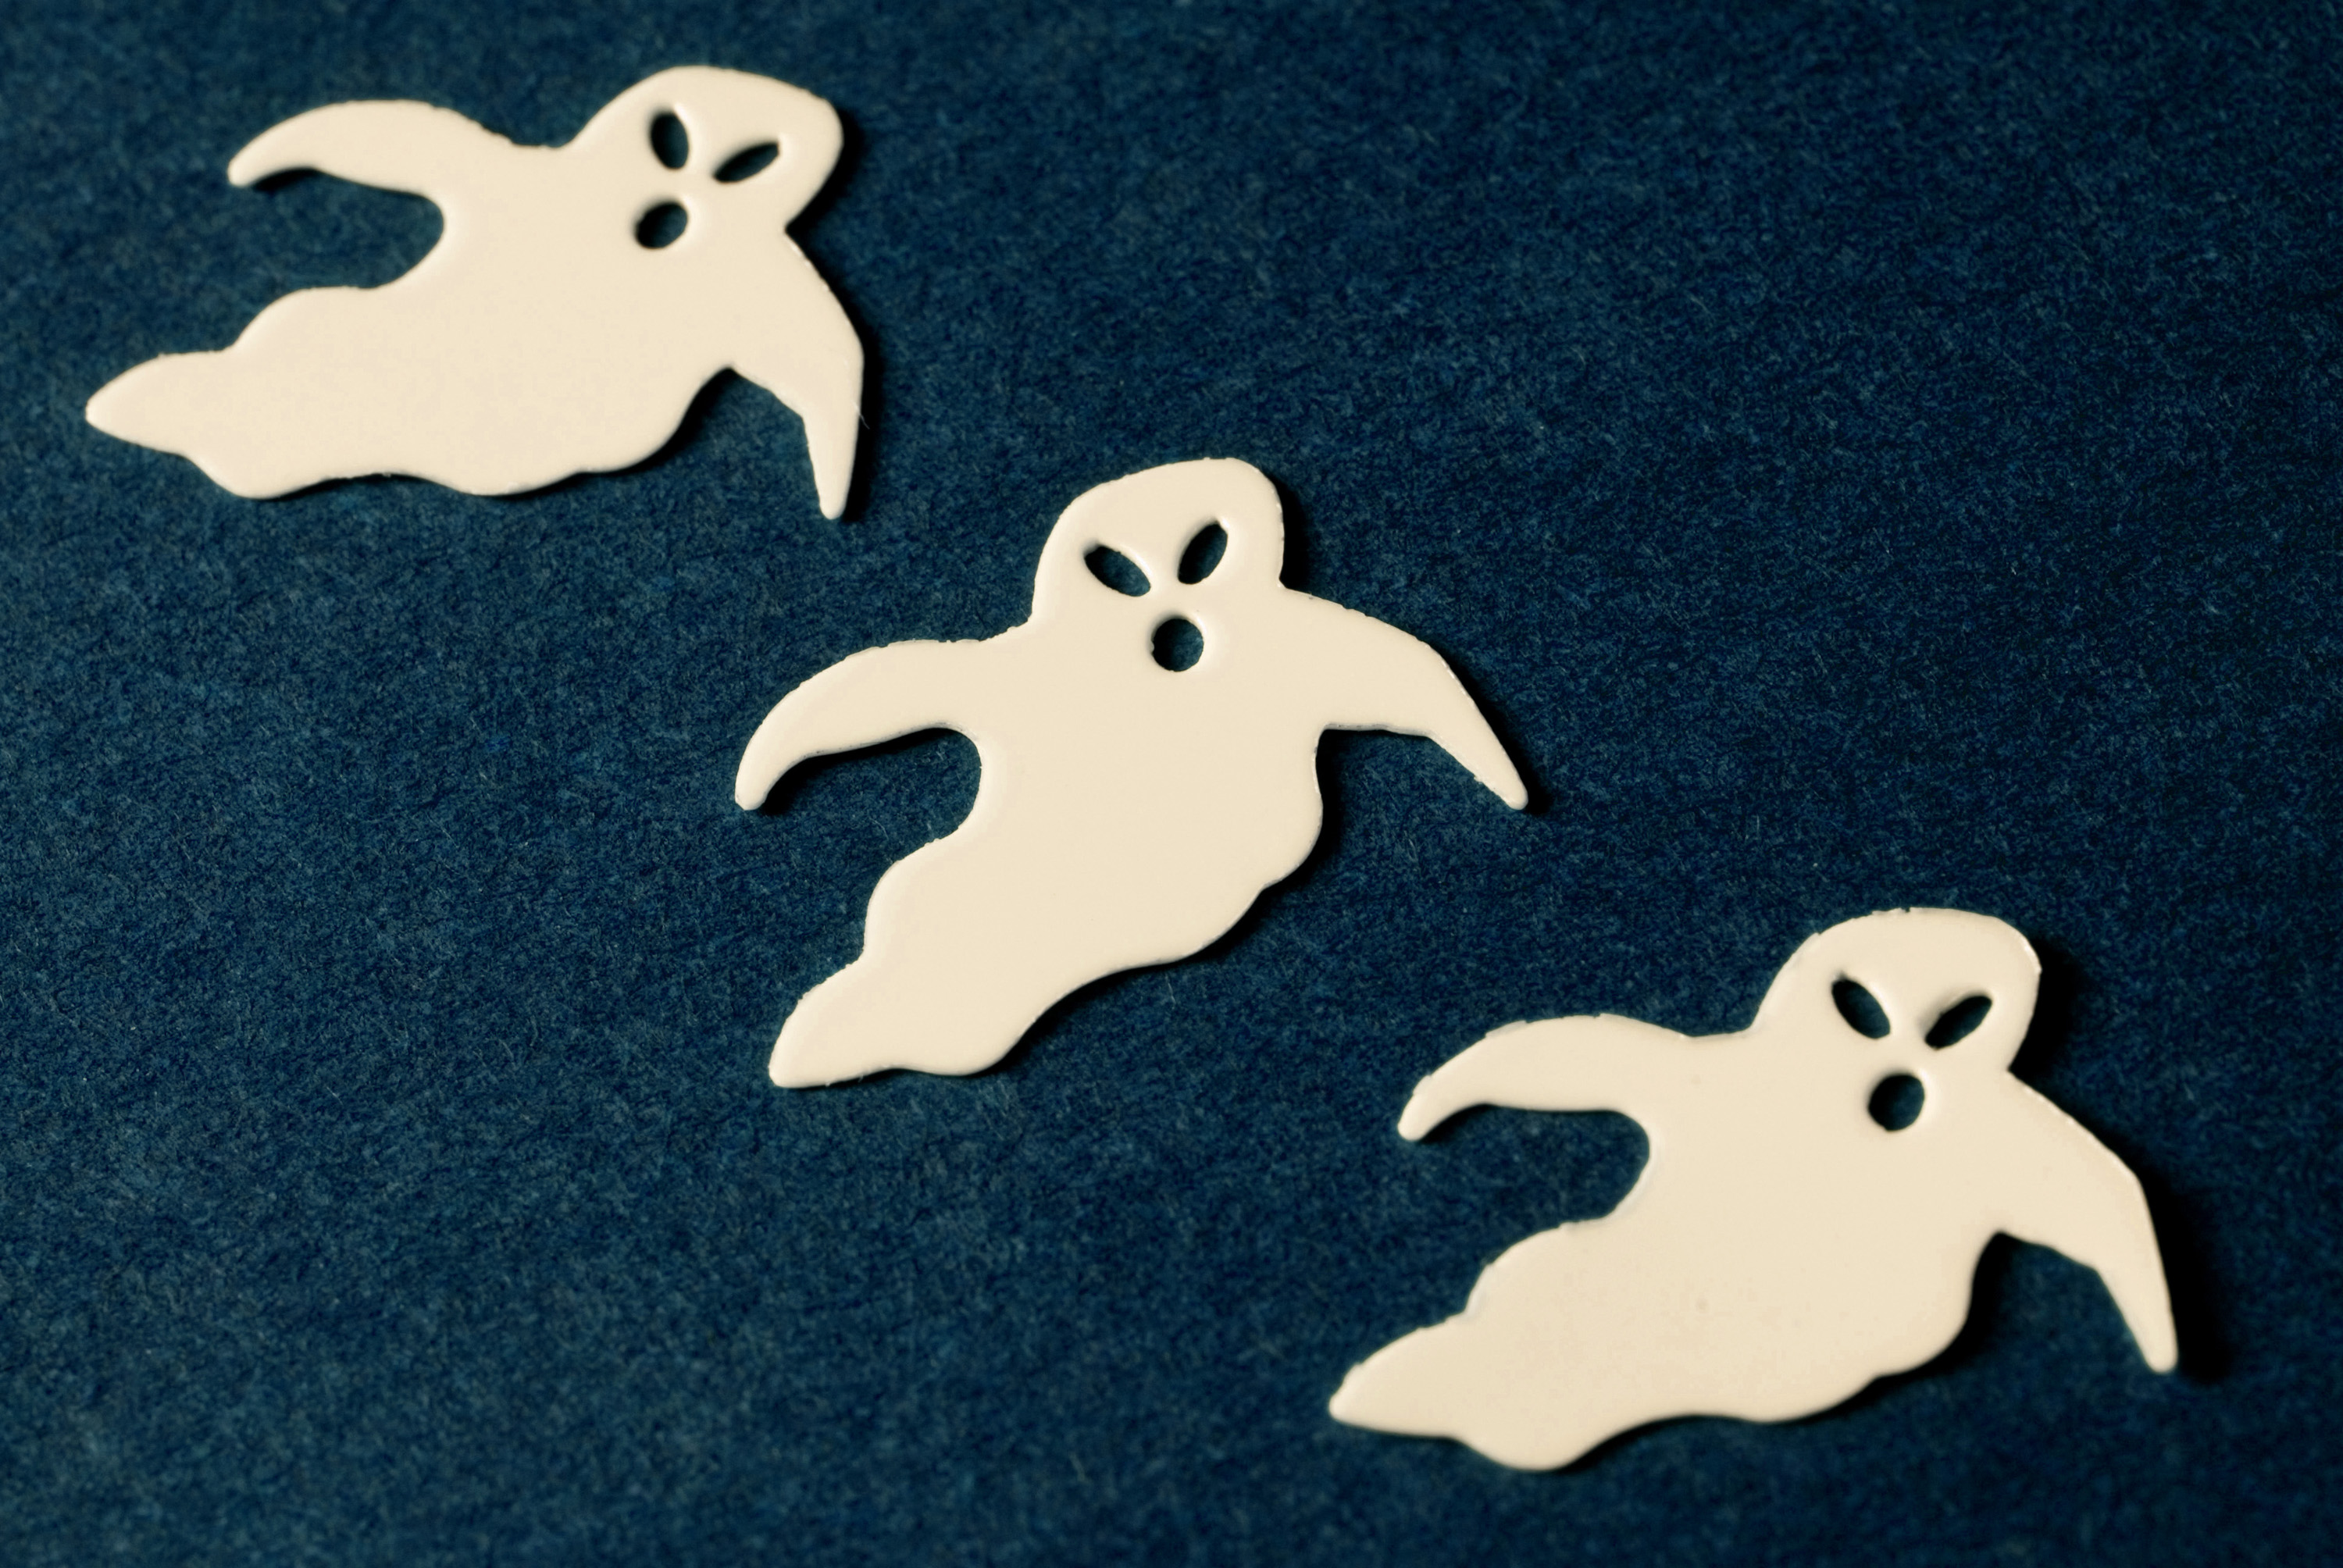 Image result for image of three ghosts